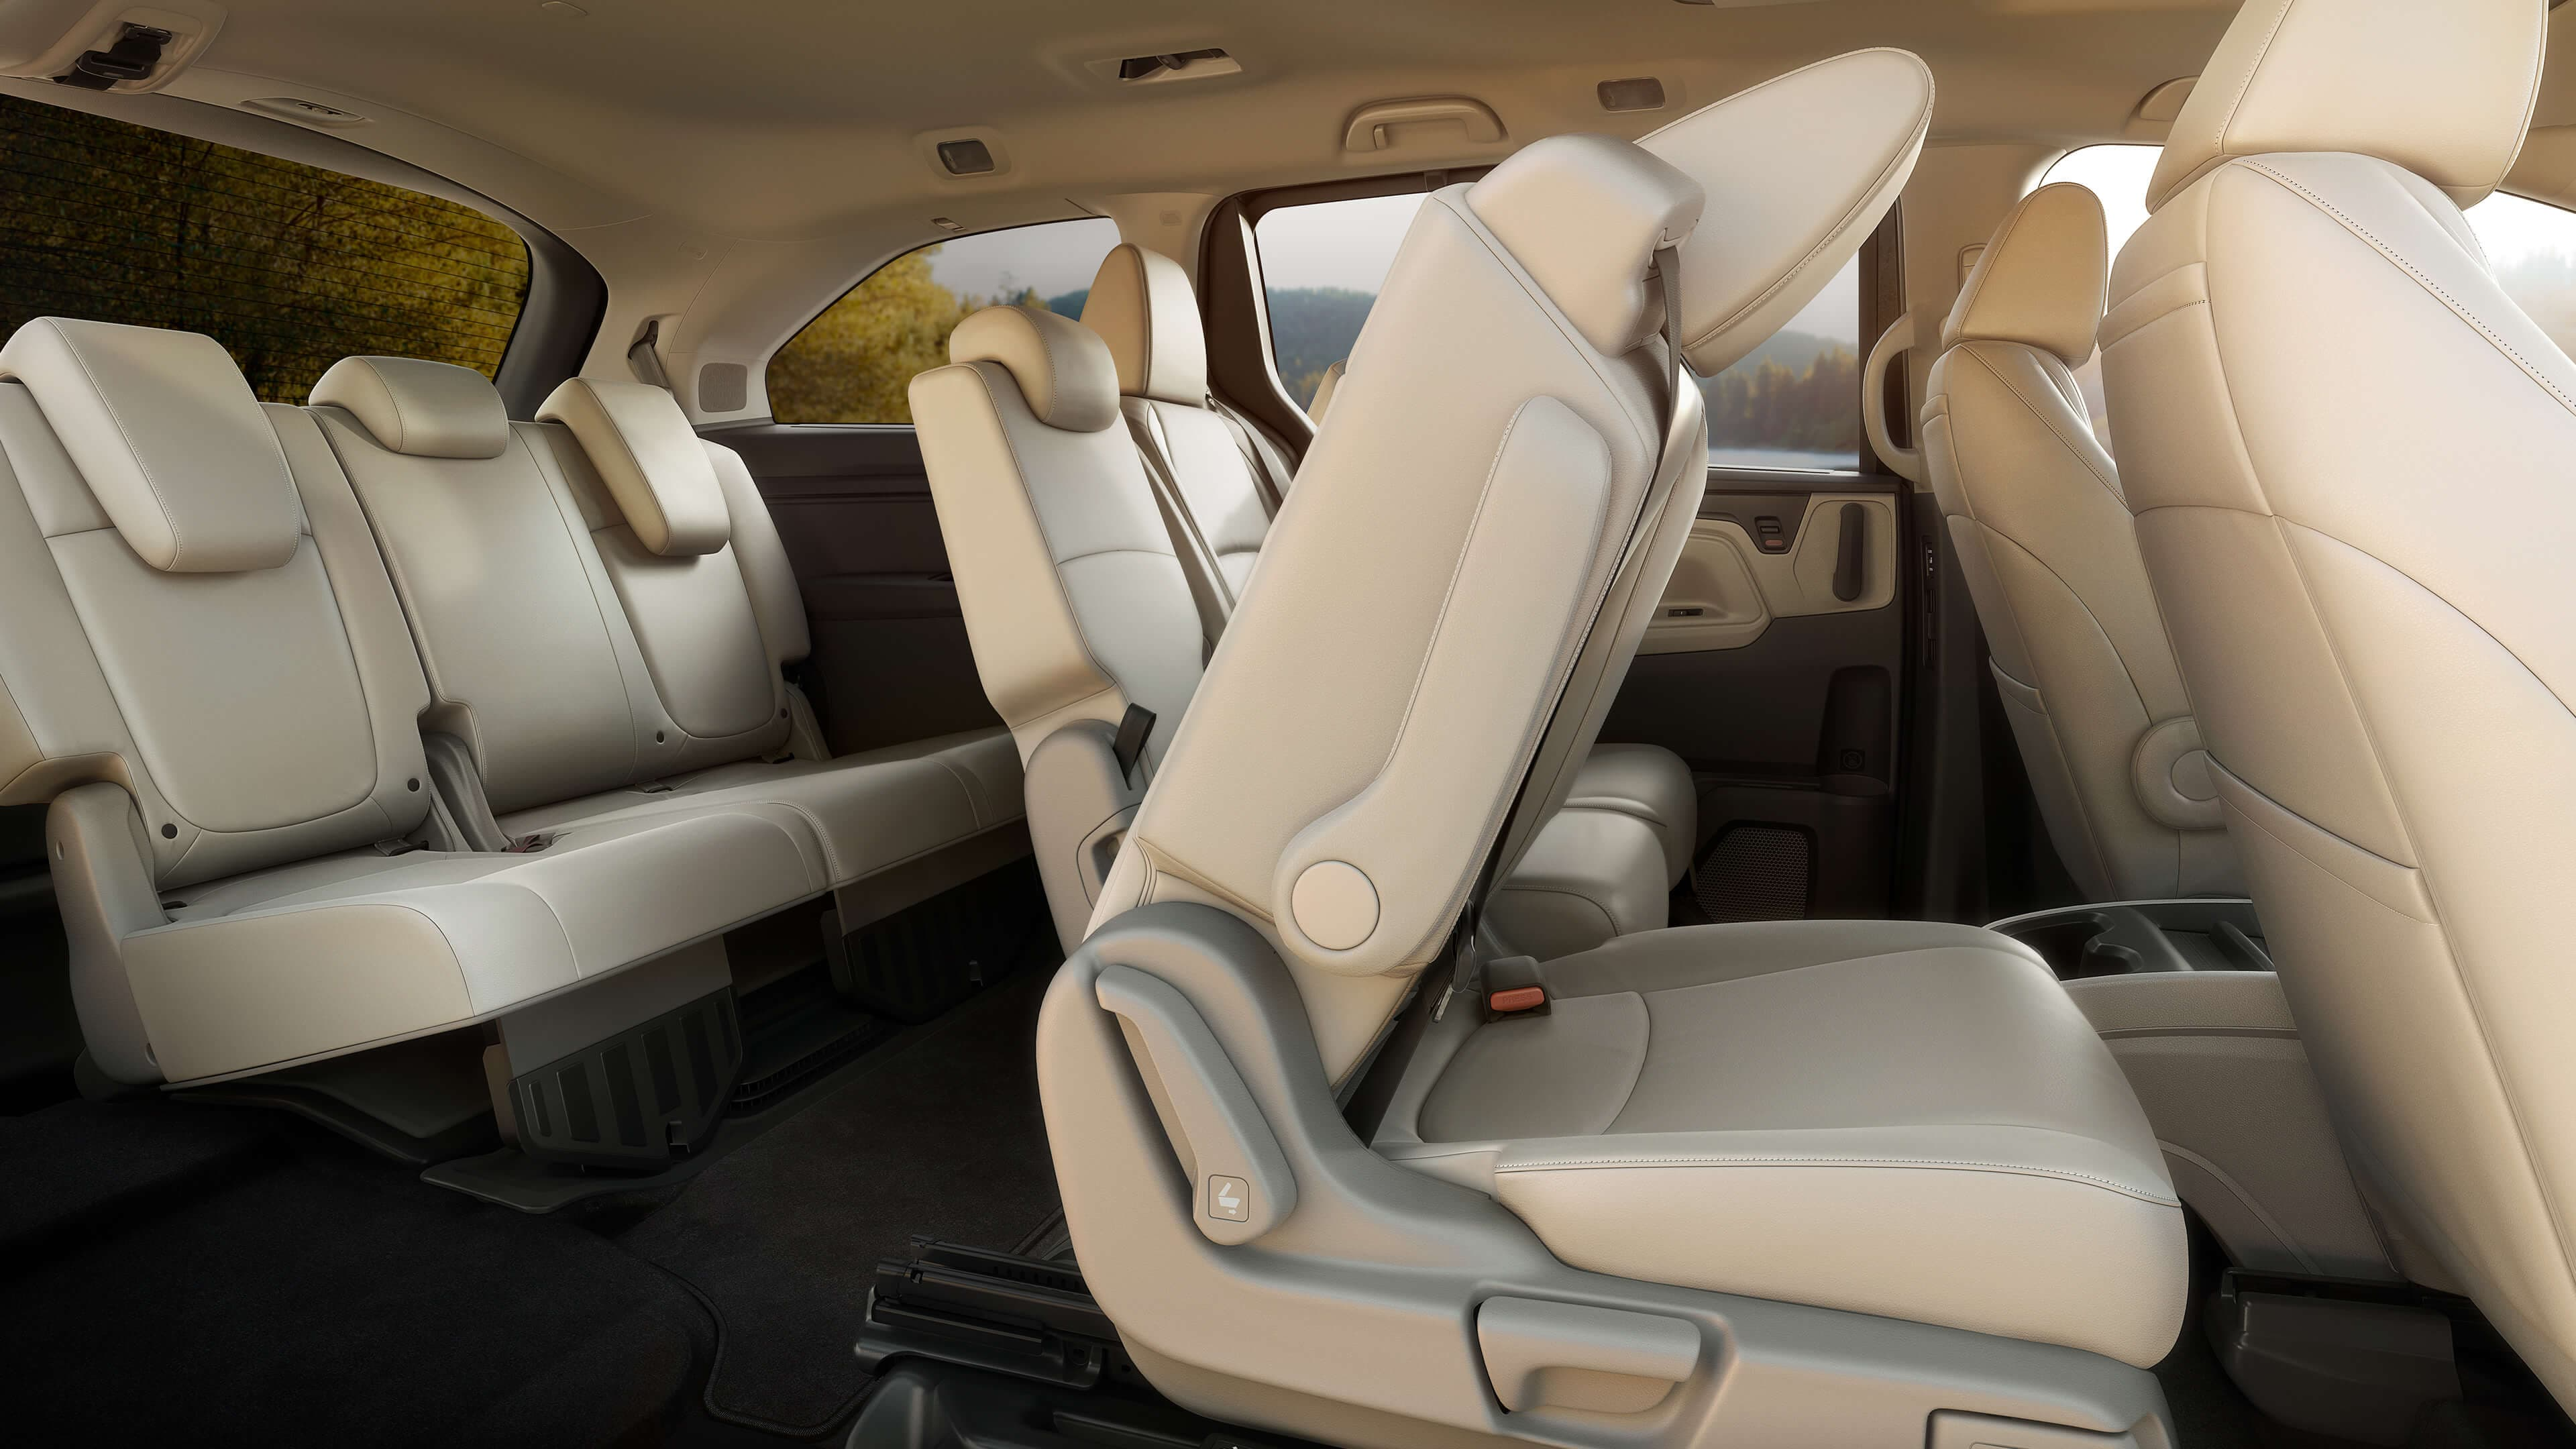 2020 Honda Odyssey rear seats with one folding